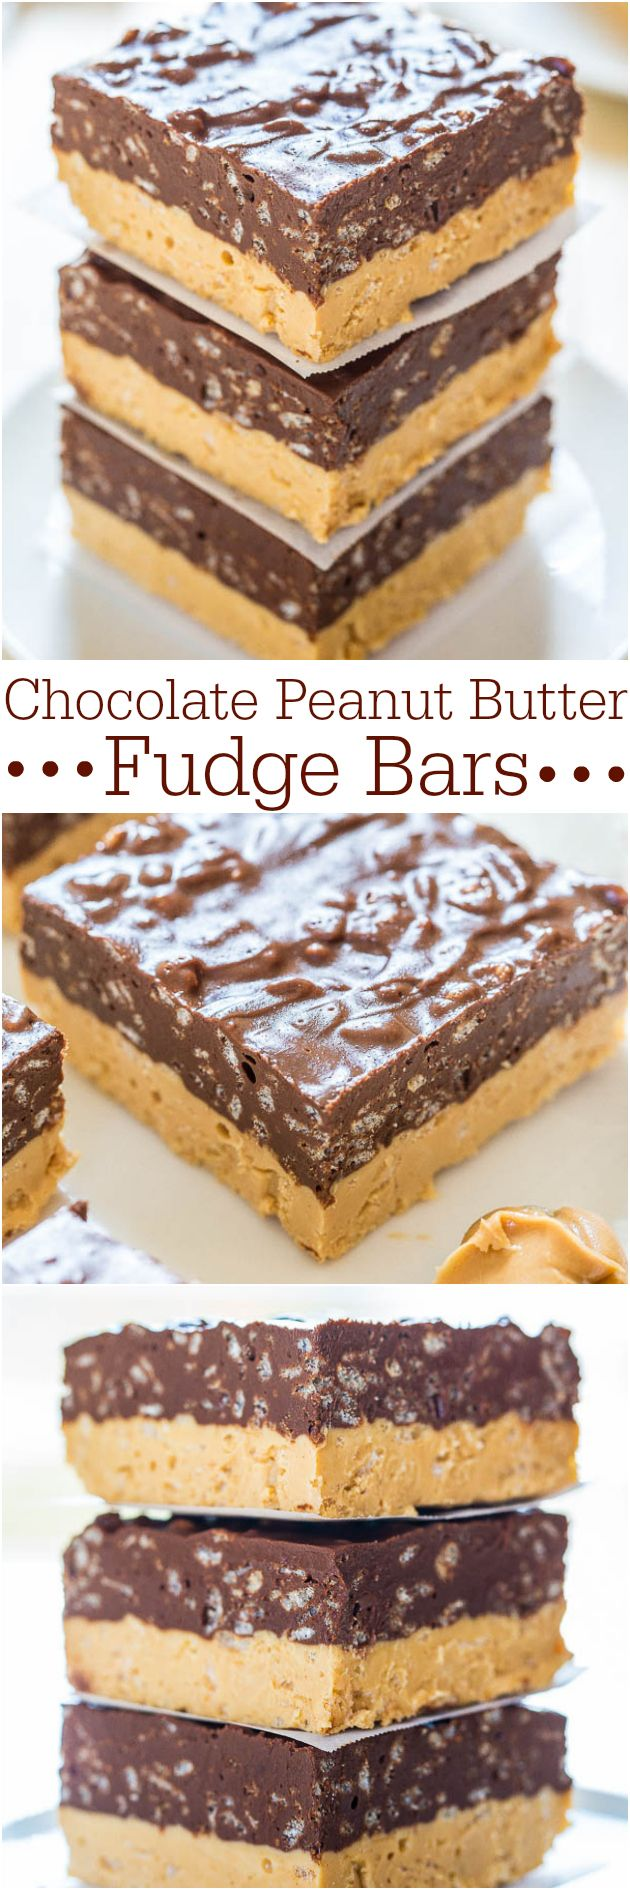 Peanut butter fudge under chocolate peanut butter fudge...both layers have Rice Krispies